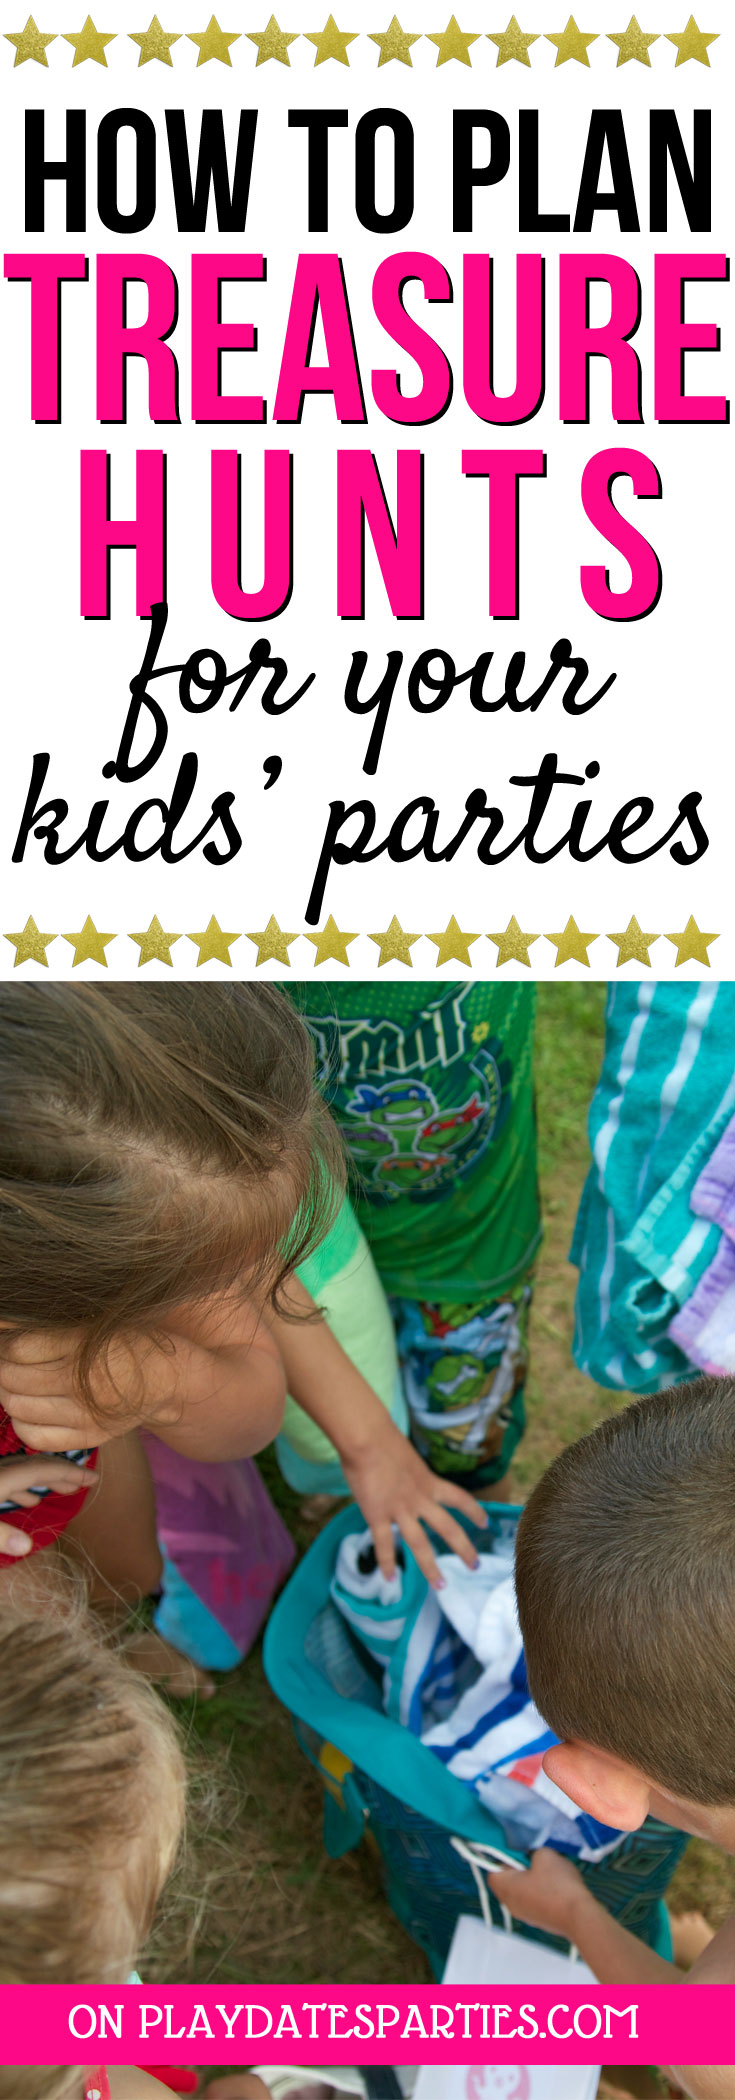 Want an awesome activity for your kid's birthday party? Head over to playdatesparties.com to get the best kids treasure hunt ideas, tips and tricks for a fantastic time! #kids #kidsparties #kidspartyideas #birthdayparty